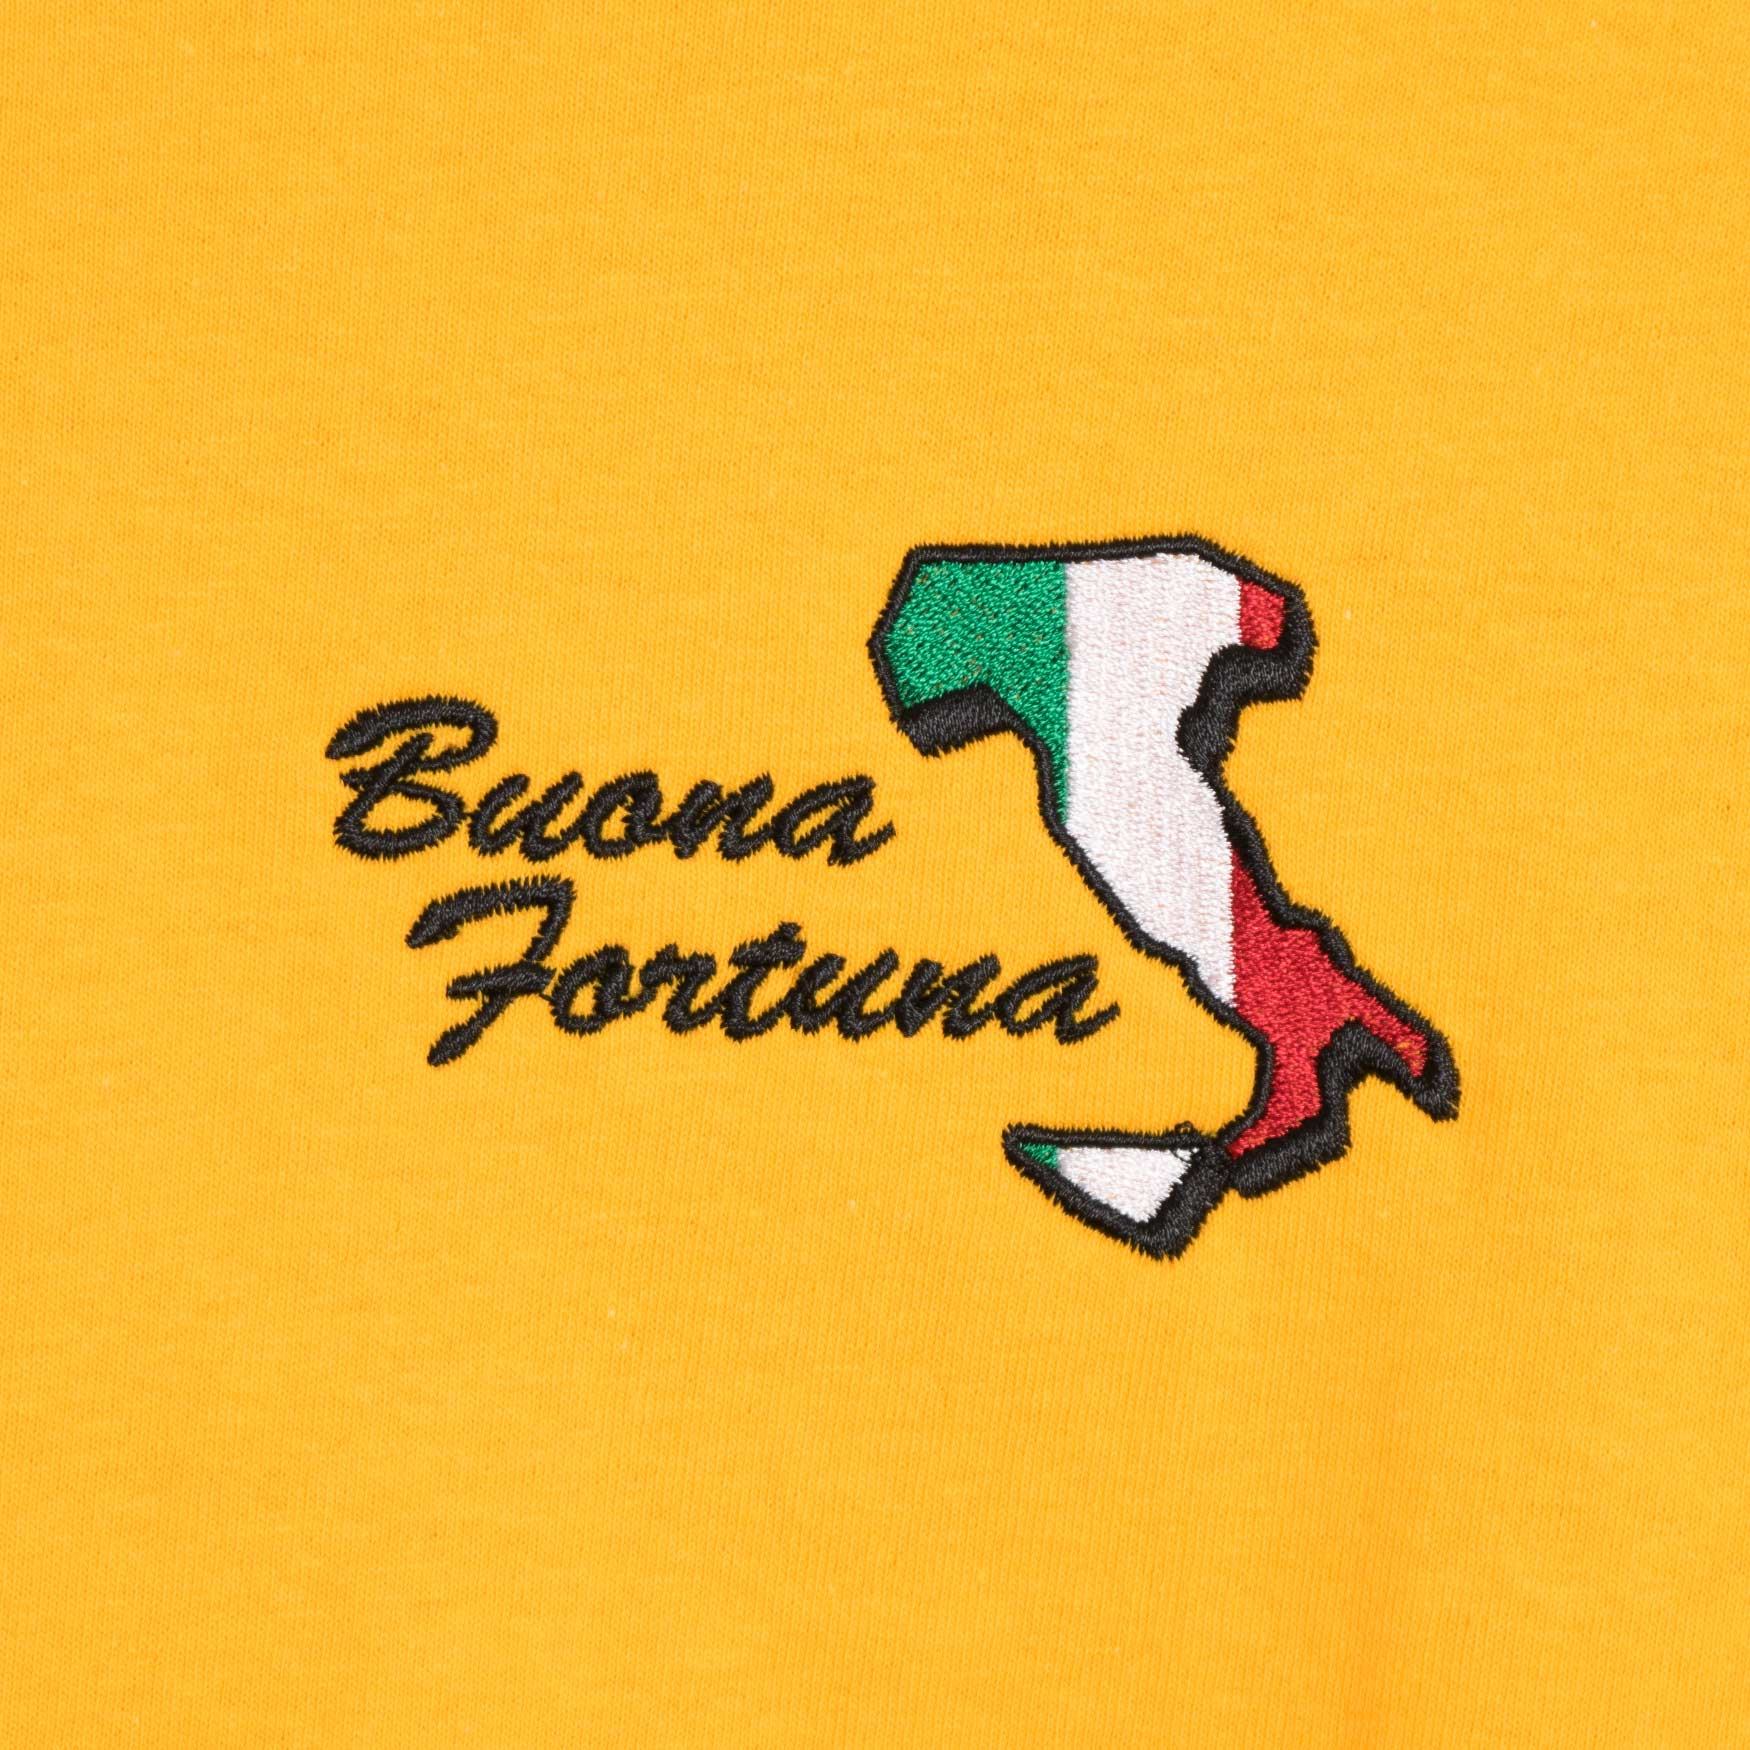 Come Sundown Buona Fortuna T-Shirt - Yellow T-Shirt - CARTOCON